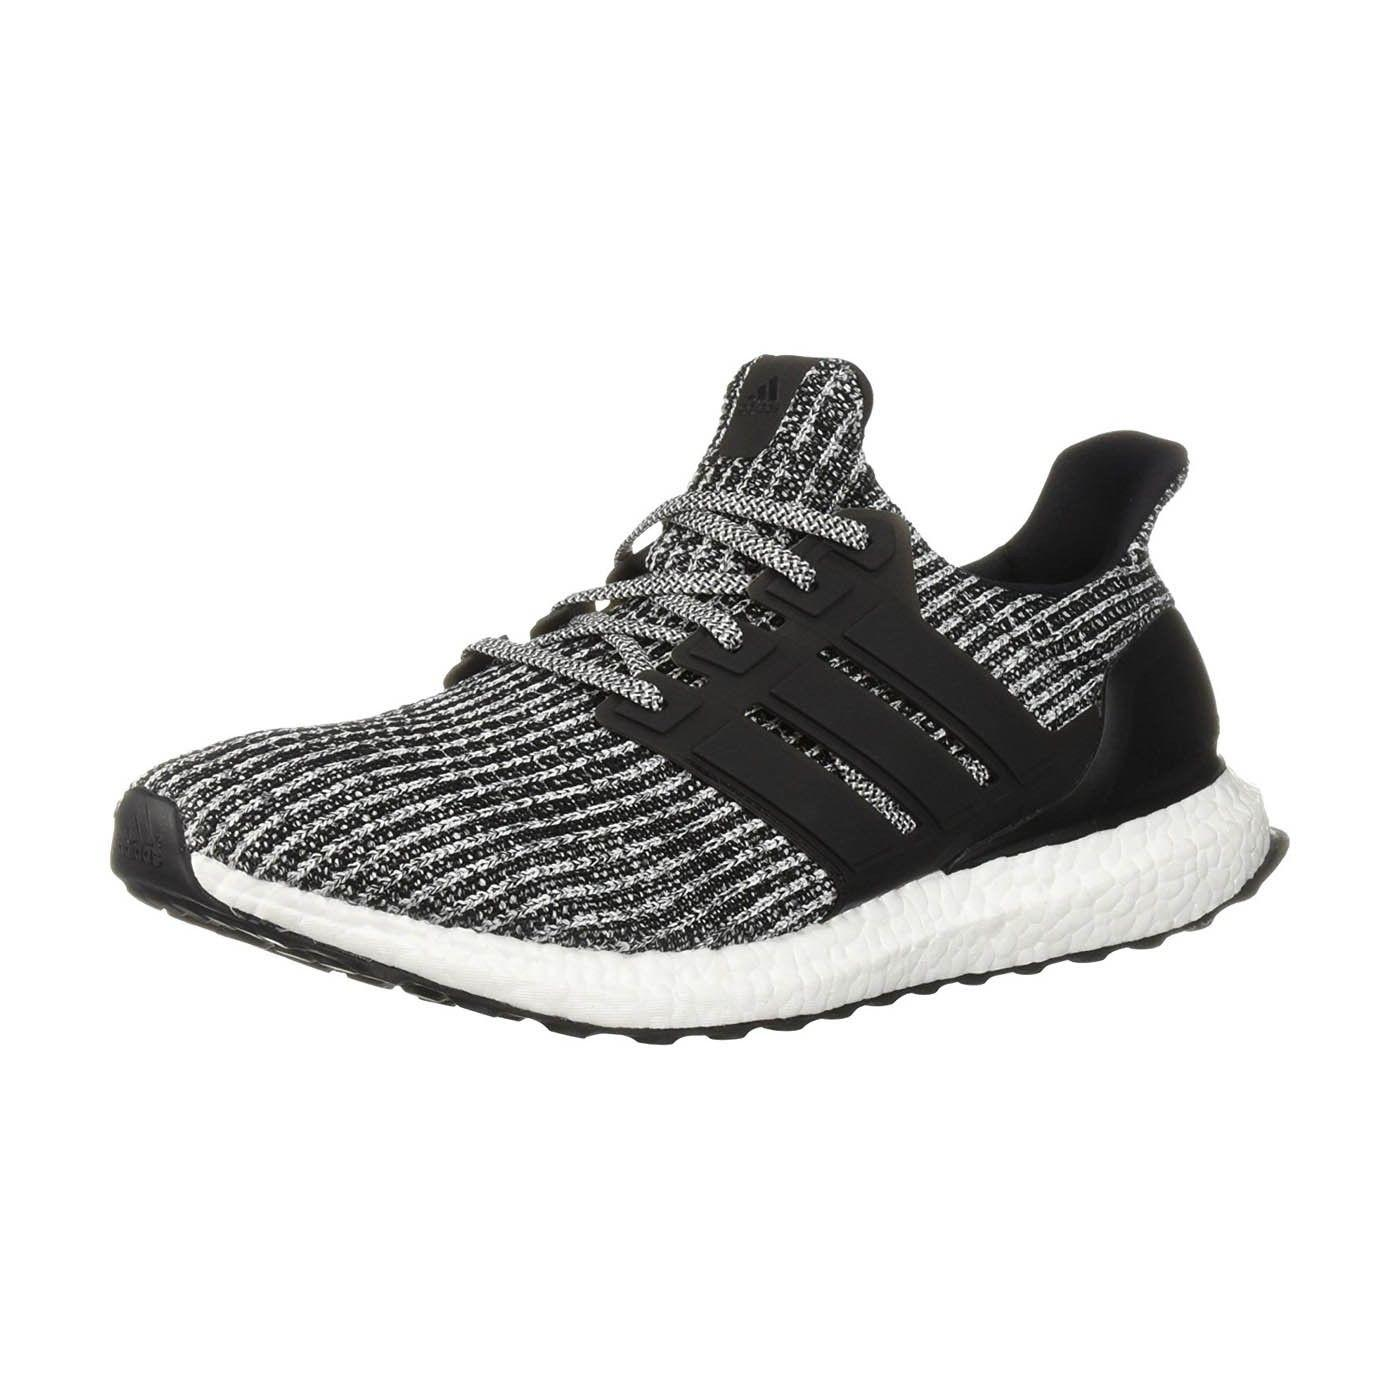 a7c4c436091 cheapest adidas performance mens ultraboost af8a0 de9fc  discount adidas  white black bb6179 size 11 white black boots 2955e 2bc41